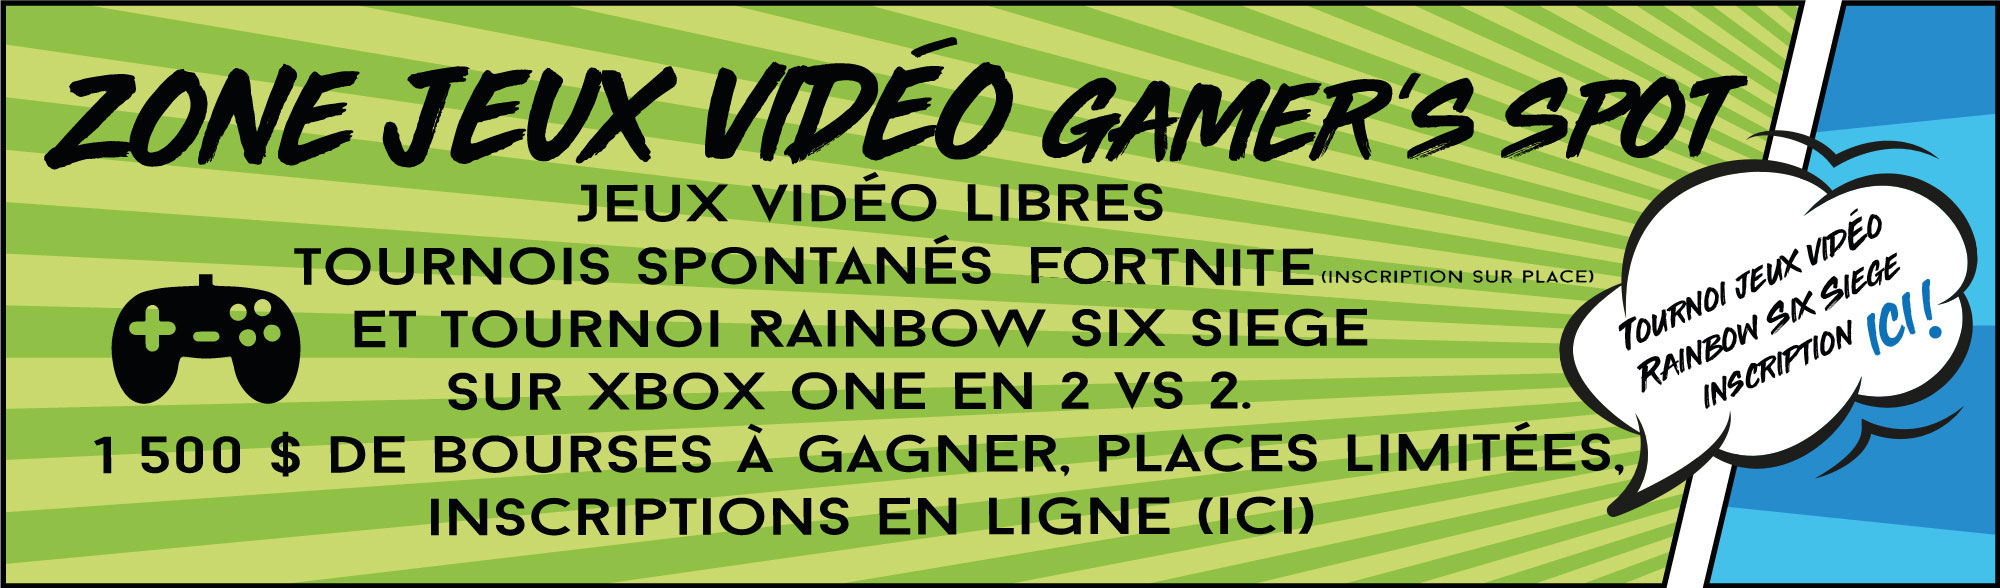 zone jeux video Gamer's Spot